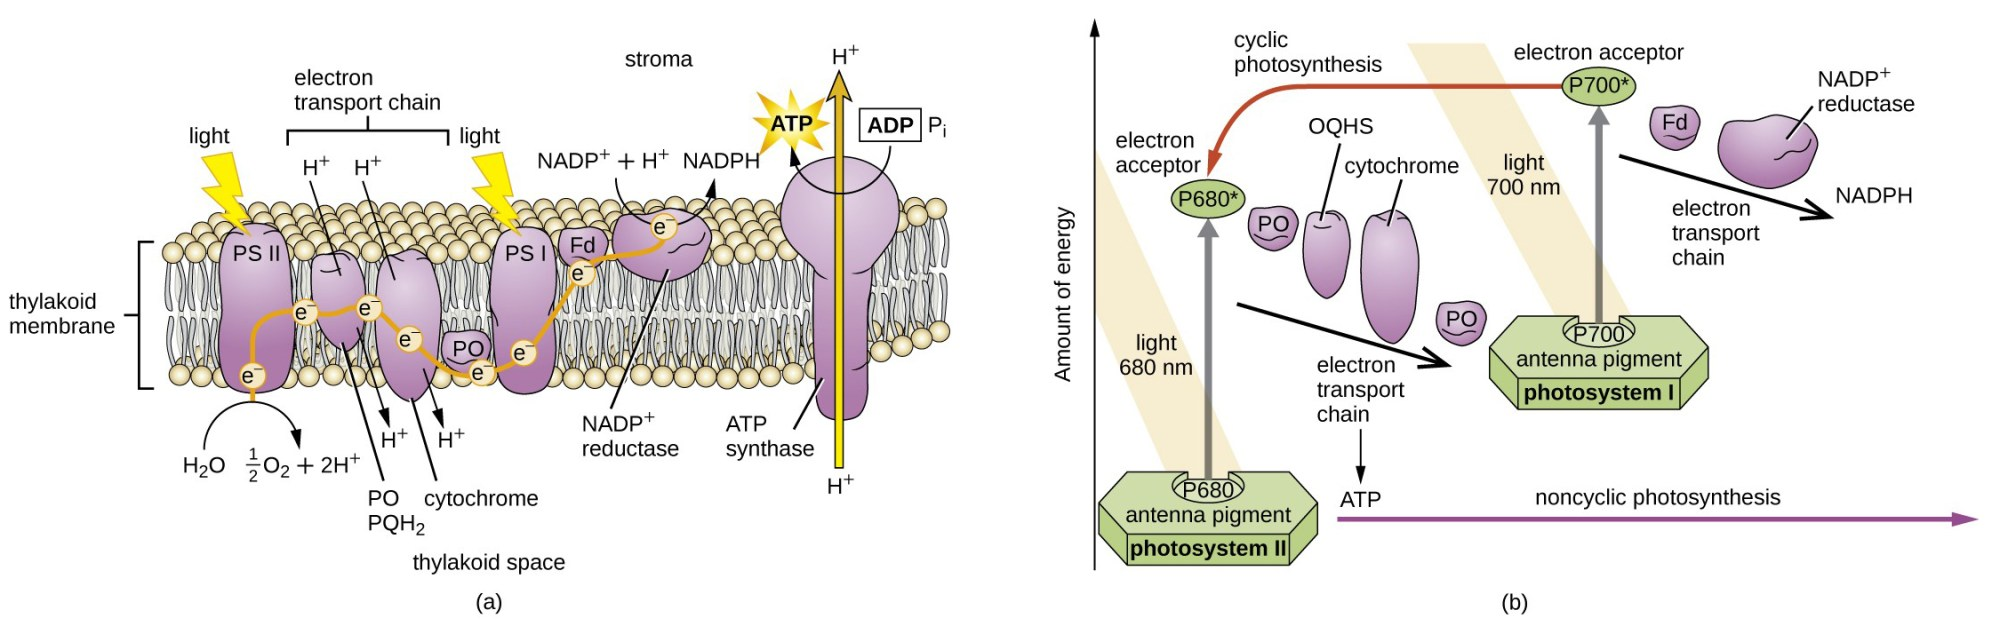 hight resolution of a drawing of a thylakoid membrane with proteins light strikes ps ii which breaks